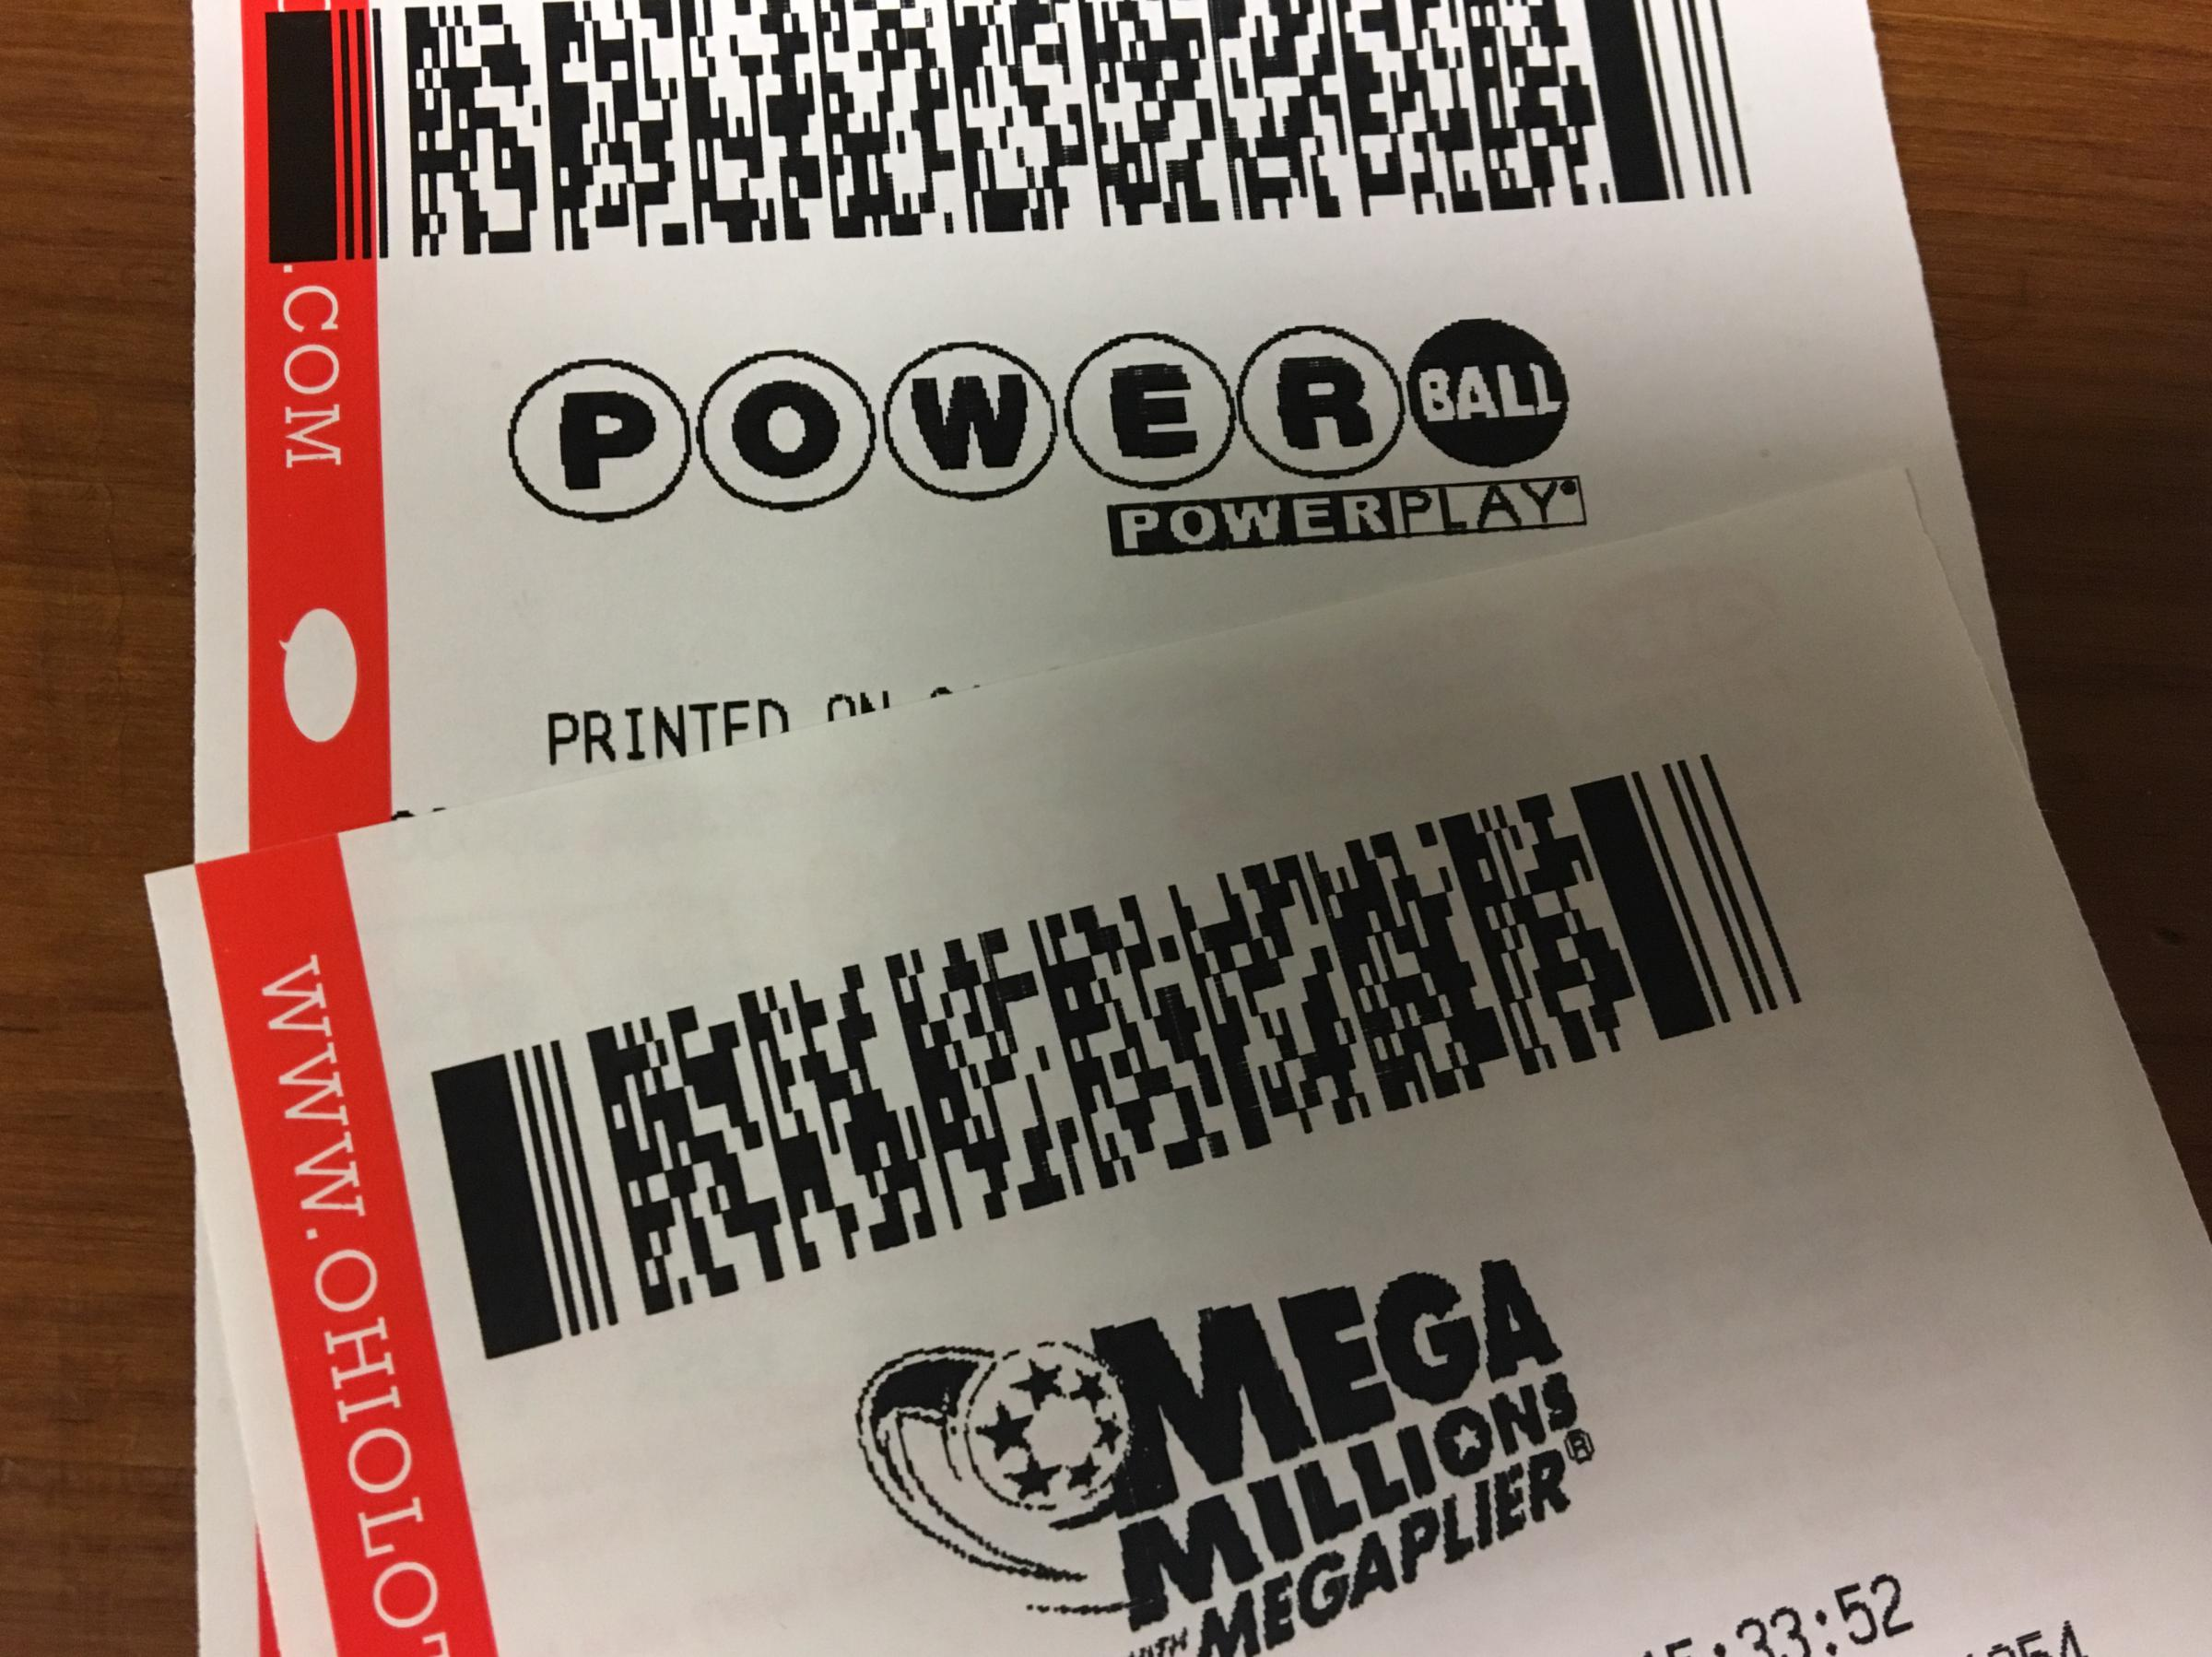 1 winning ticket sold in $450 million Mega Millions drawing